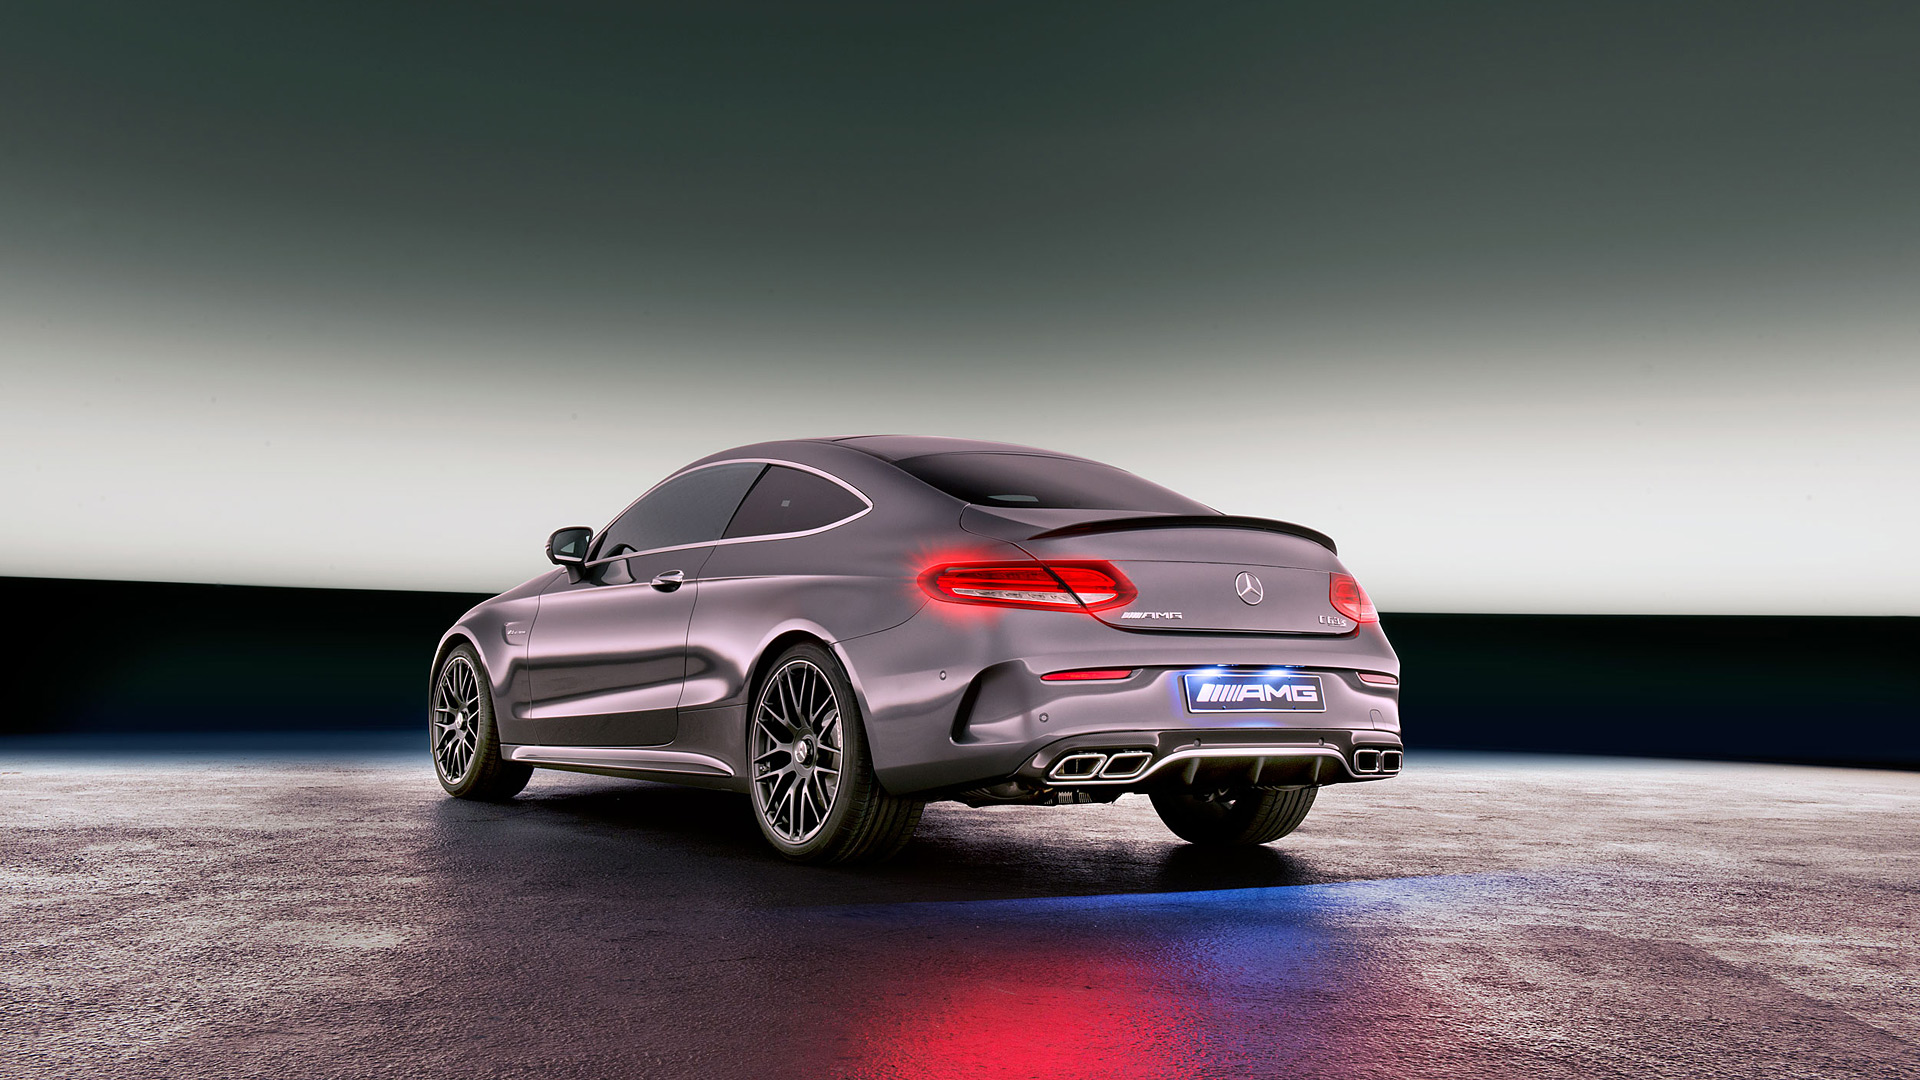 2017 Mercedes Benz C63 AMG Coupe wallpaper Unusual